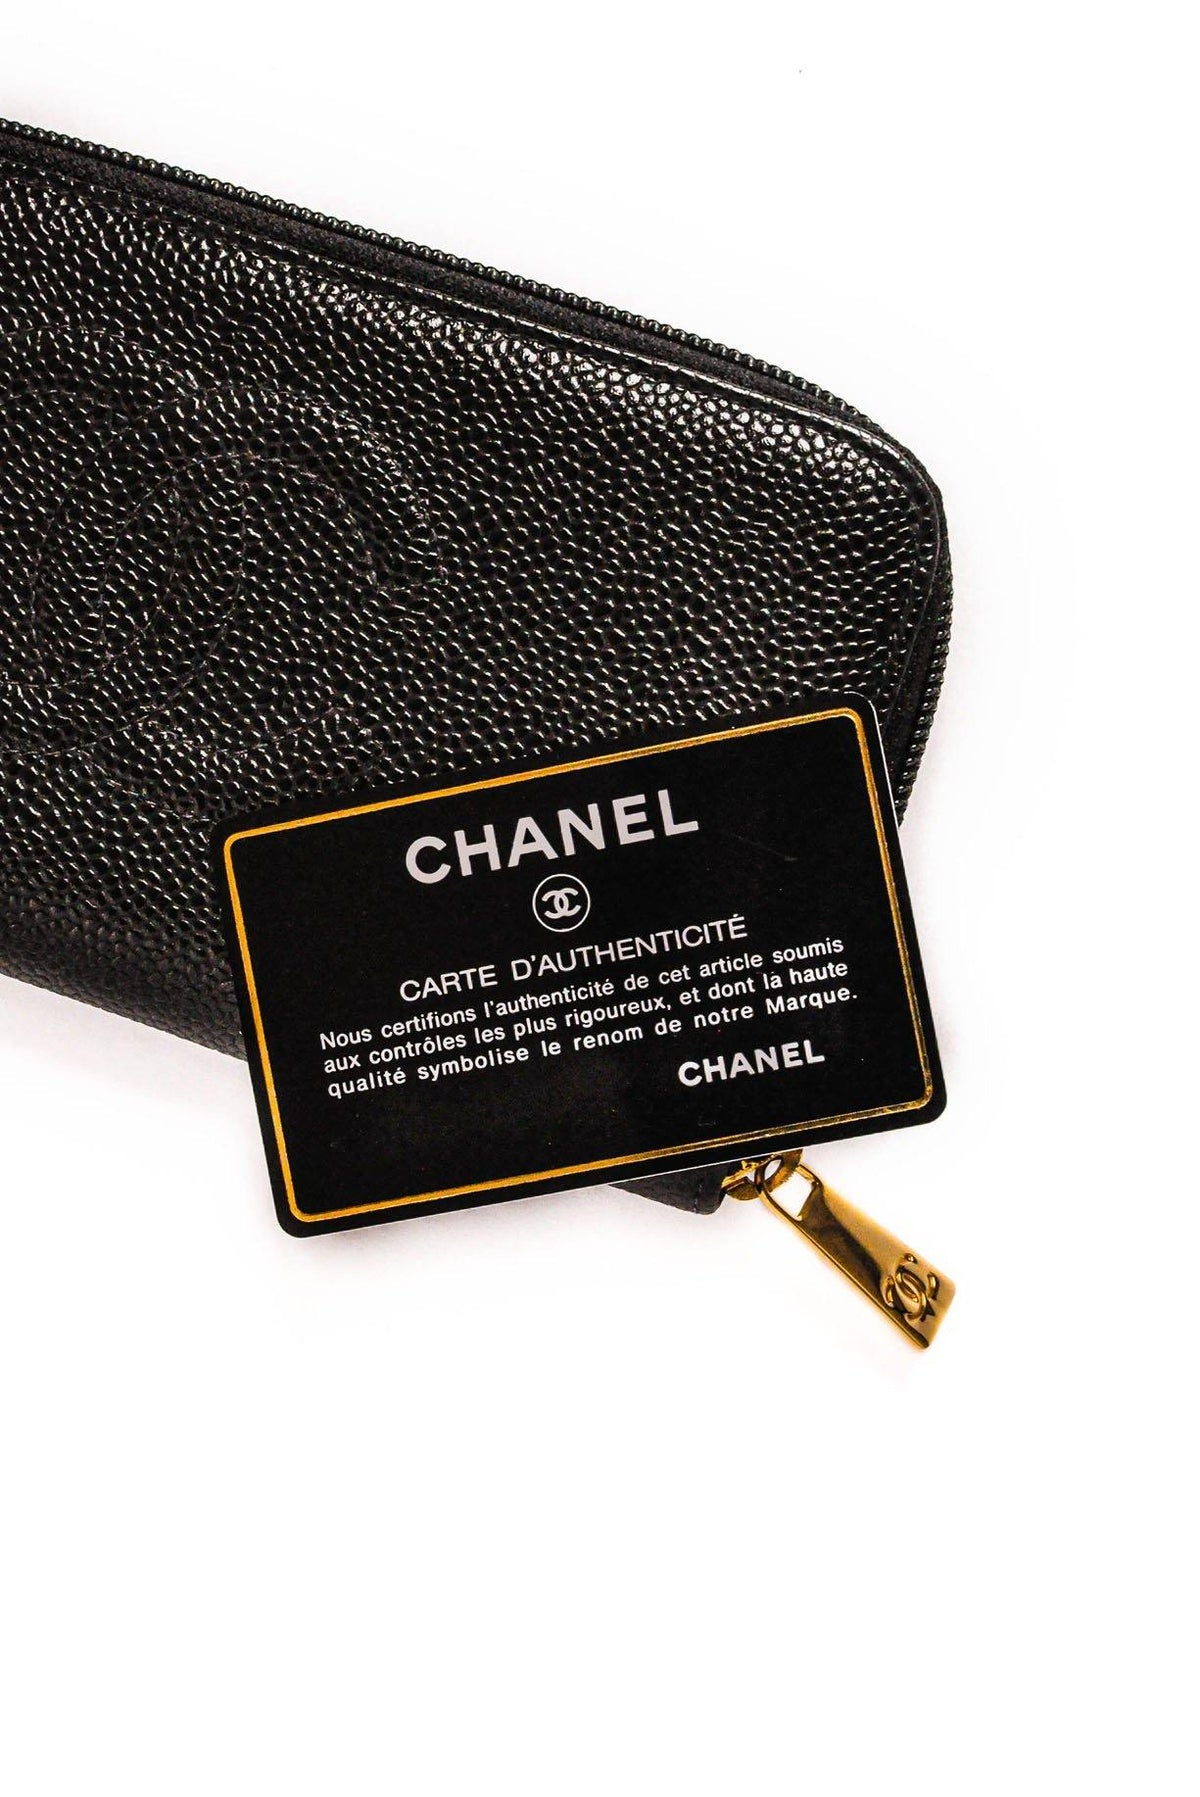 Vintage Chanel CC Black Caviar Leather Wallet from Sweet and SPark